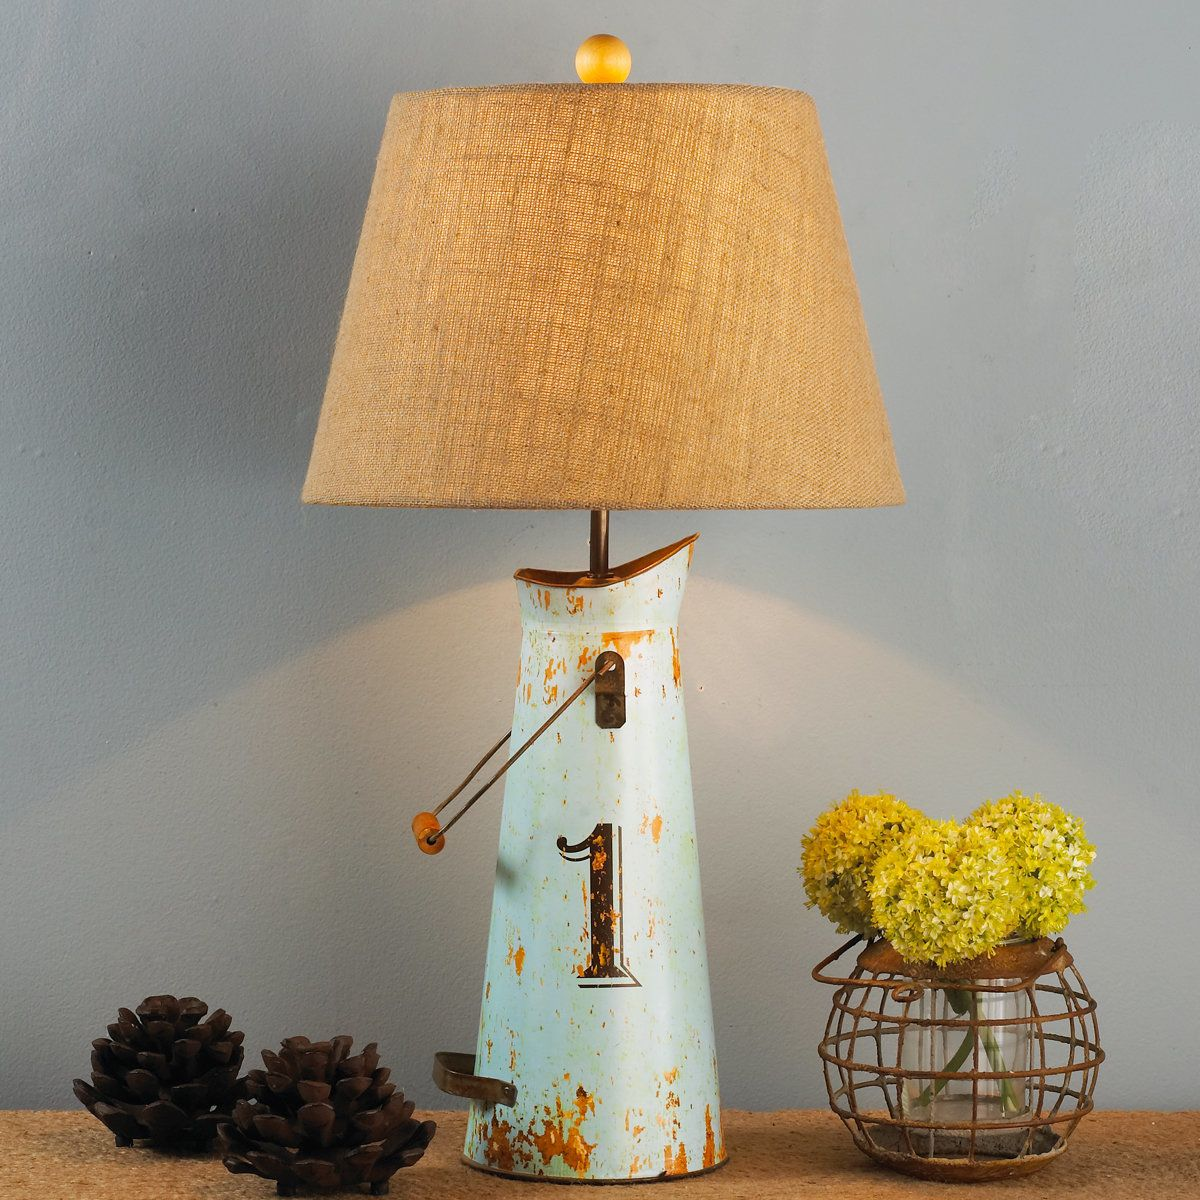 Milk Can Table Lamp is part of Country Home Accessories Lamps - Add some vintage charm to your room with these colorful distressed metal milk can lamps with burlap shades   Aqua Blue 1 3way 100 watts 28 Hx12 W